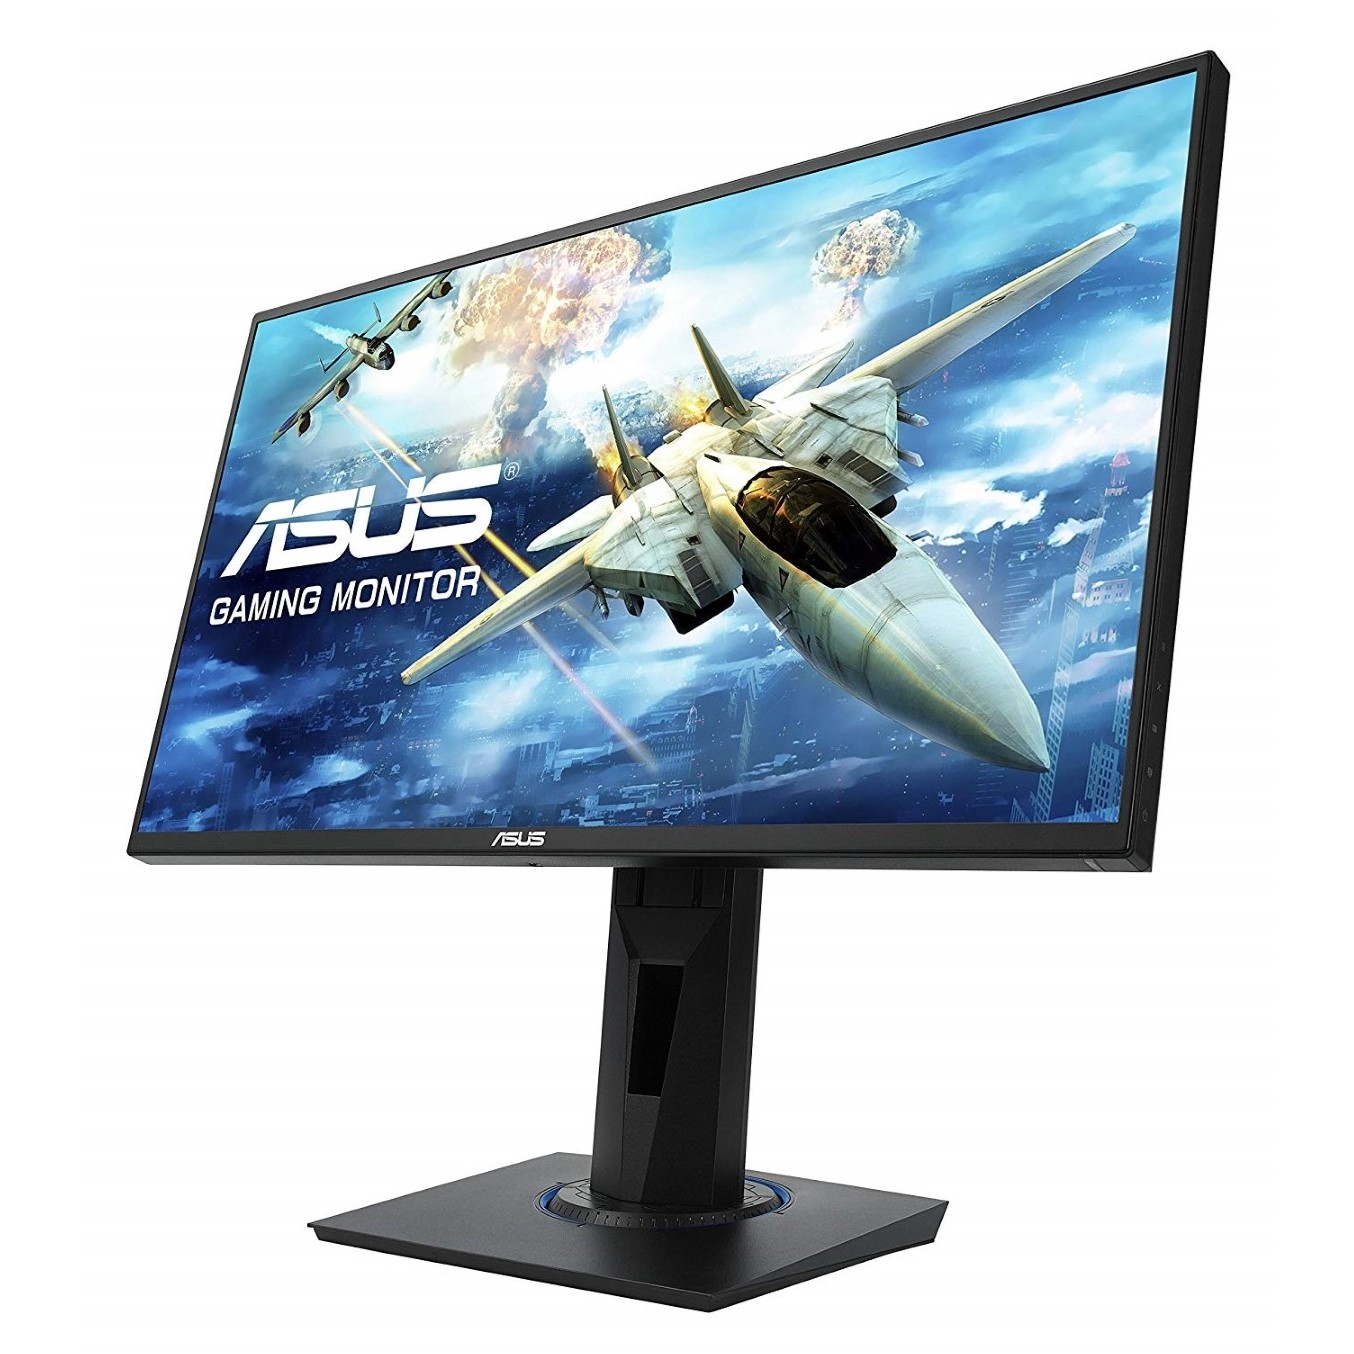 Monitor led asus vg255g 24.5pulgadas 1920 x 1080 1ms hdmi d - sub altavoces gaming reg. altura gaming